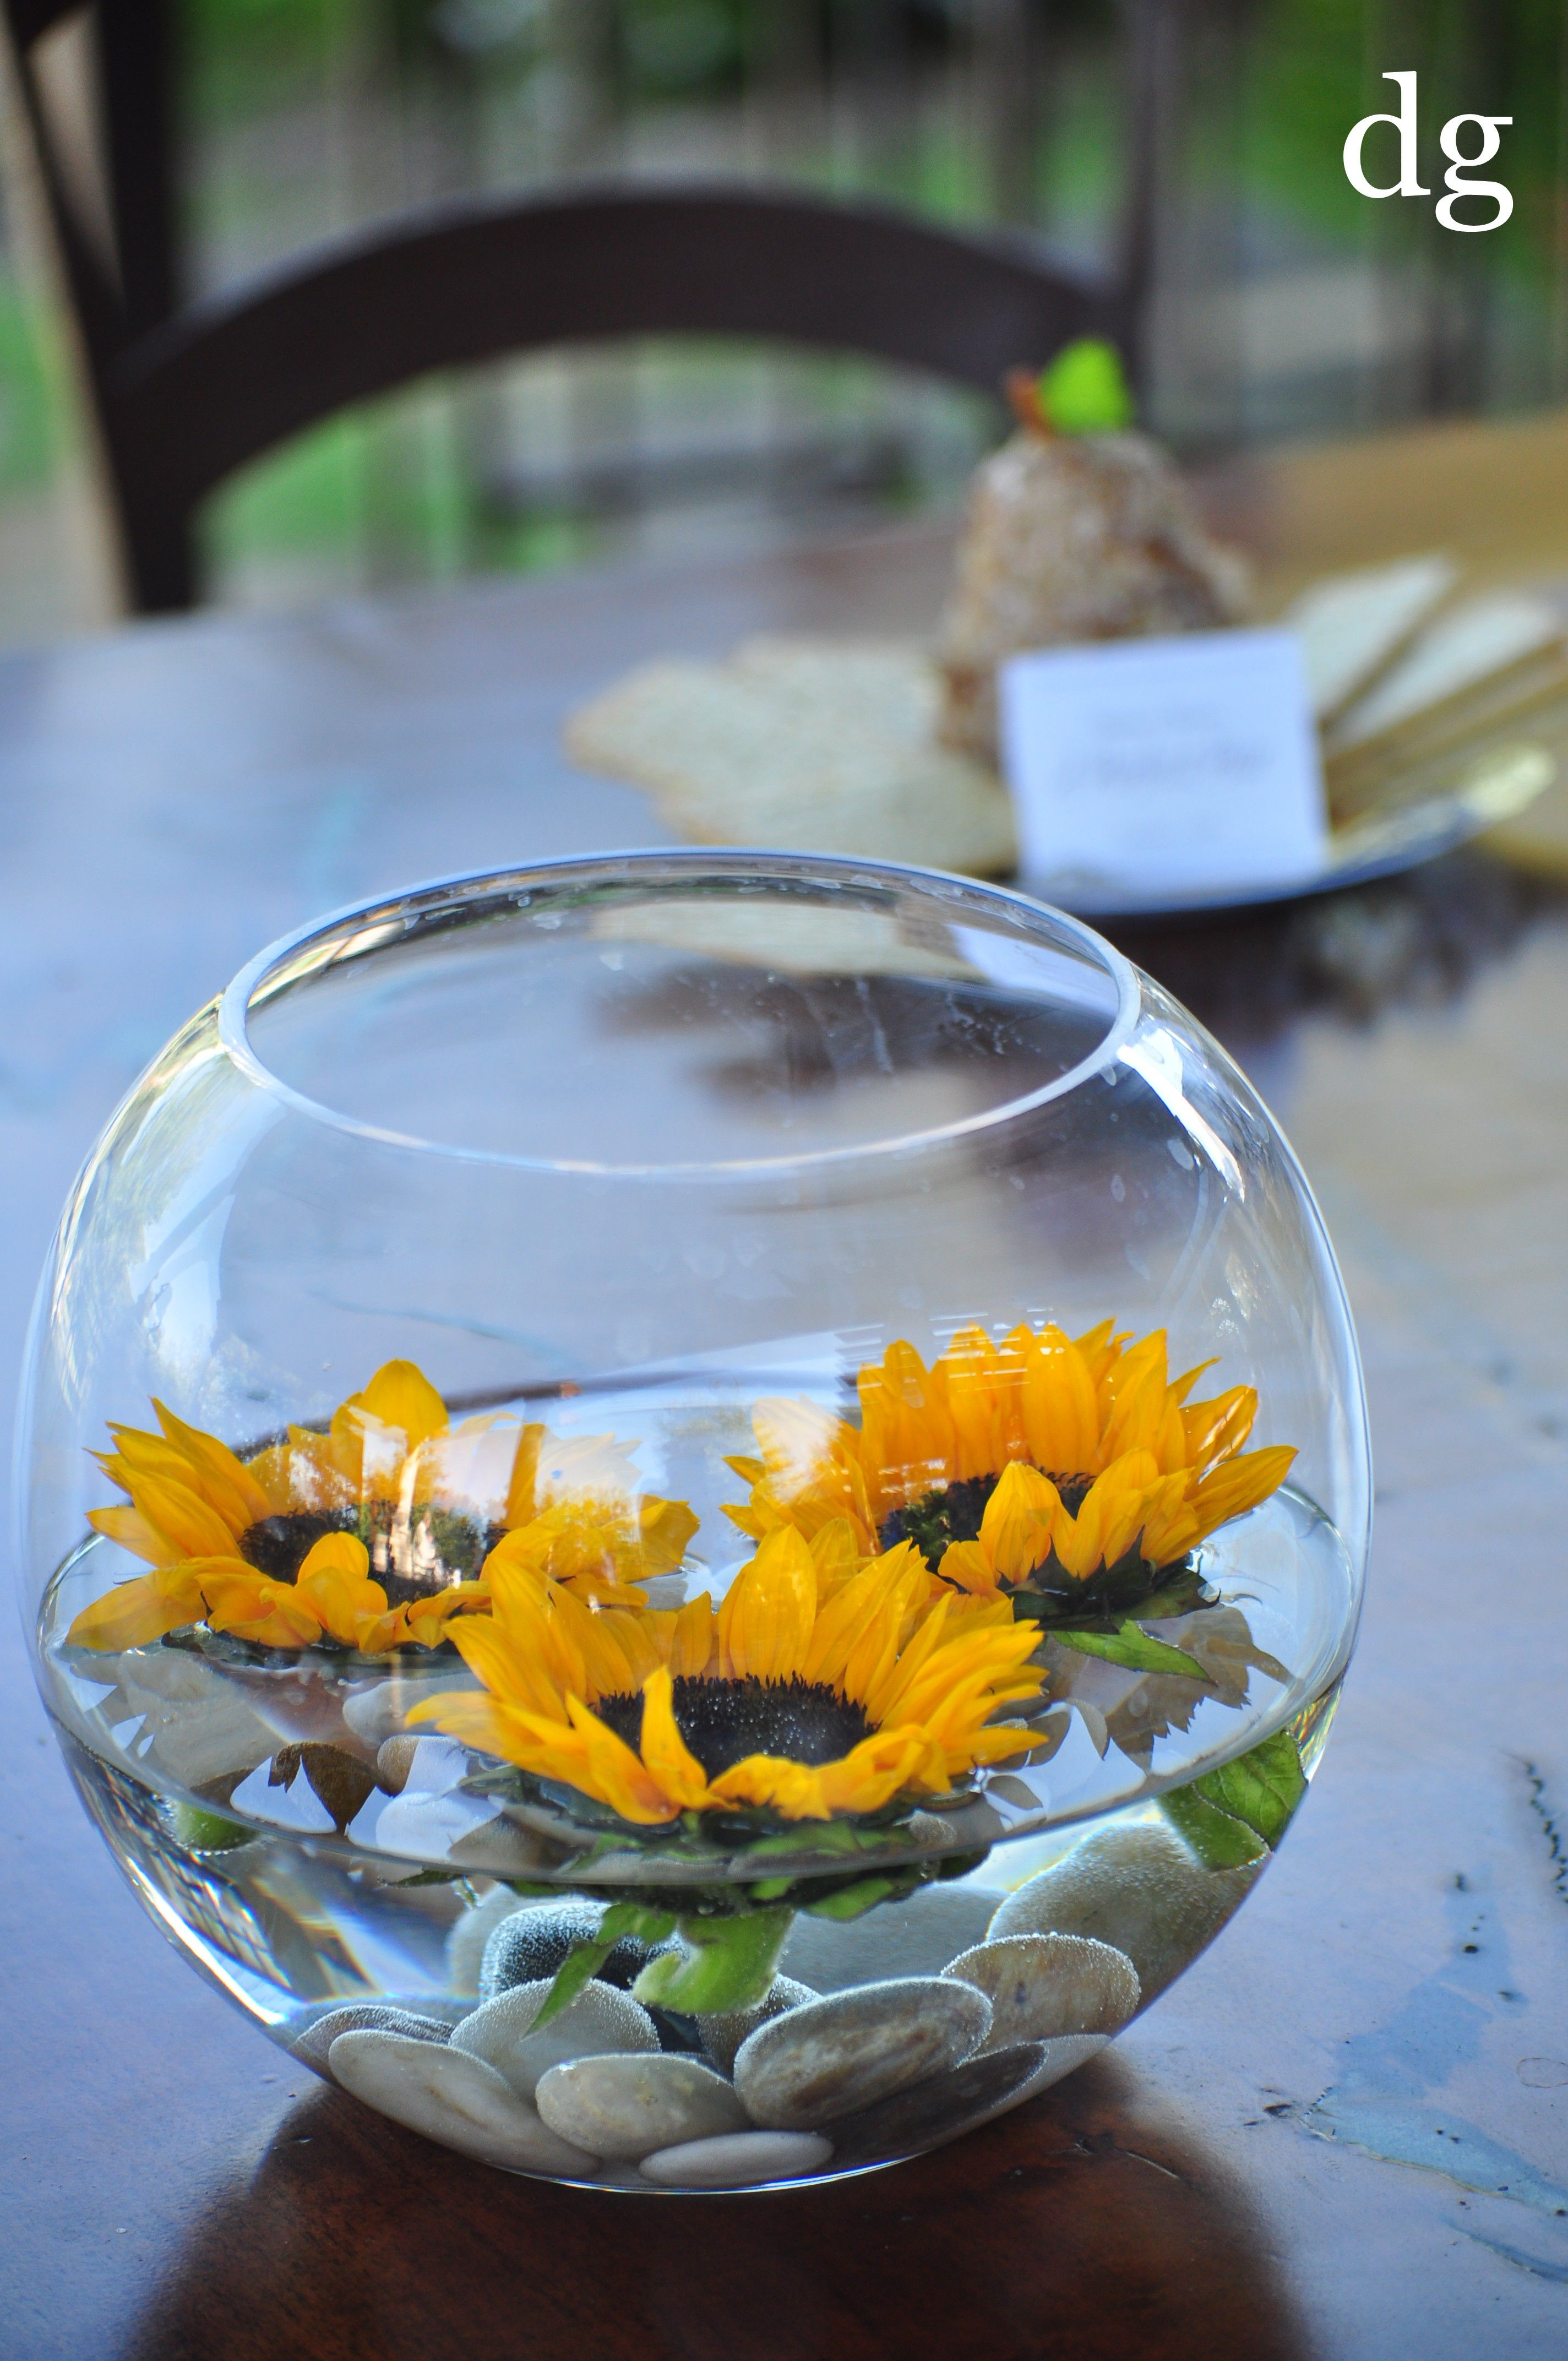 Easy Inexpensive Centerpiece Floating Sunflowers 1250 Sunflowers